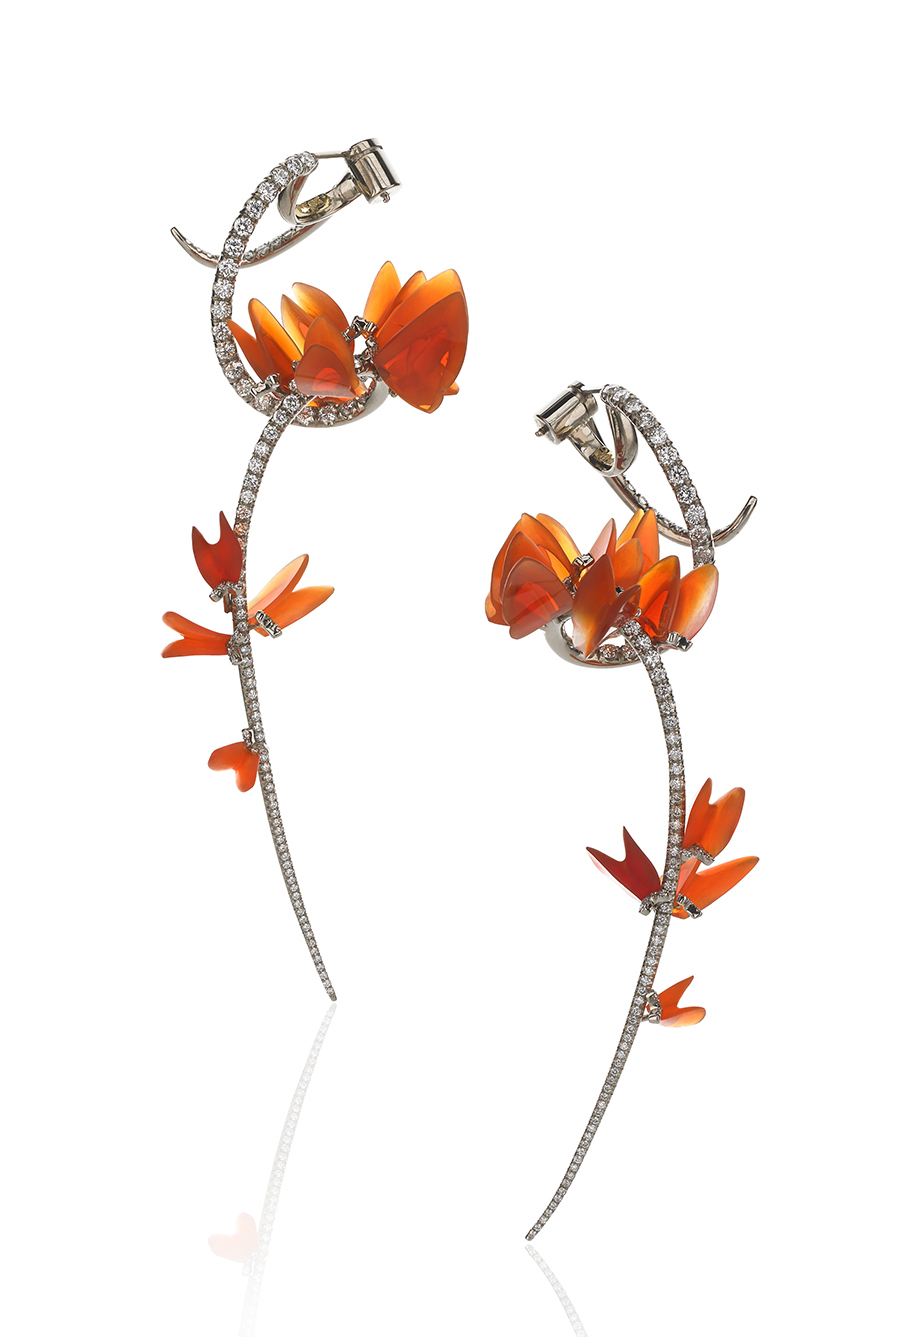 """Editors' Choice:Evening Wear Gregore Joailliers Santa Barbara, CA 18K white gold """"Sometime This Spring"""" earrings featuring Mexican fire Opals (68.88 ctw.) accented with round Diamonds (2.19 ctw.)."""